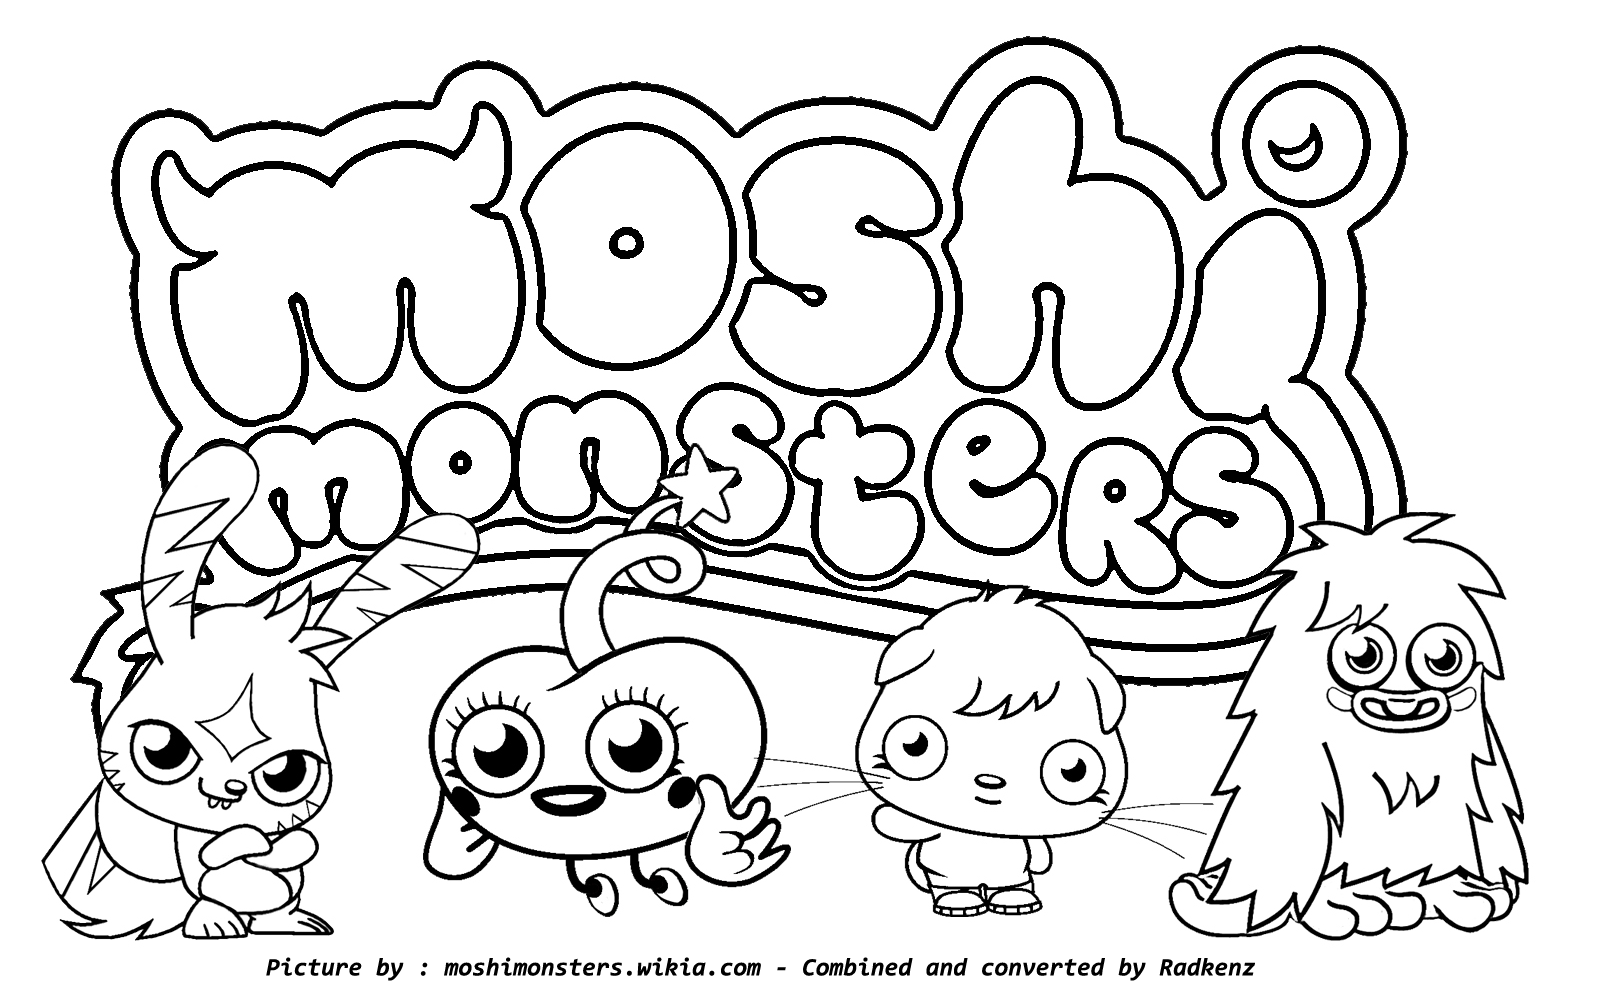 Free Online Coloring Pages TheColor - coloring pages to print and color